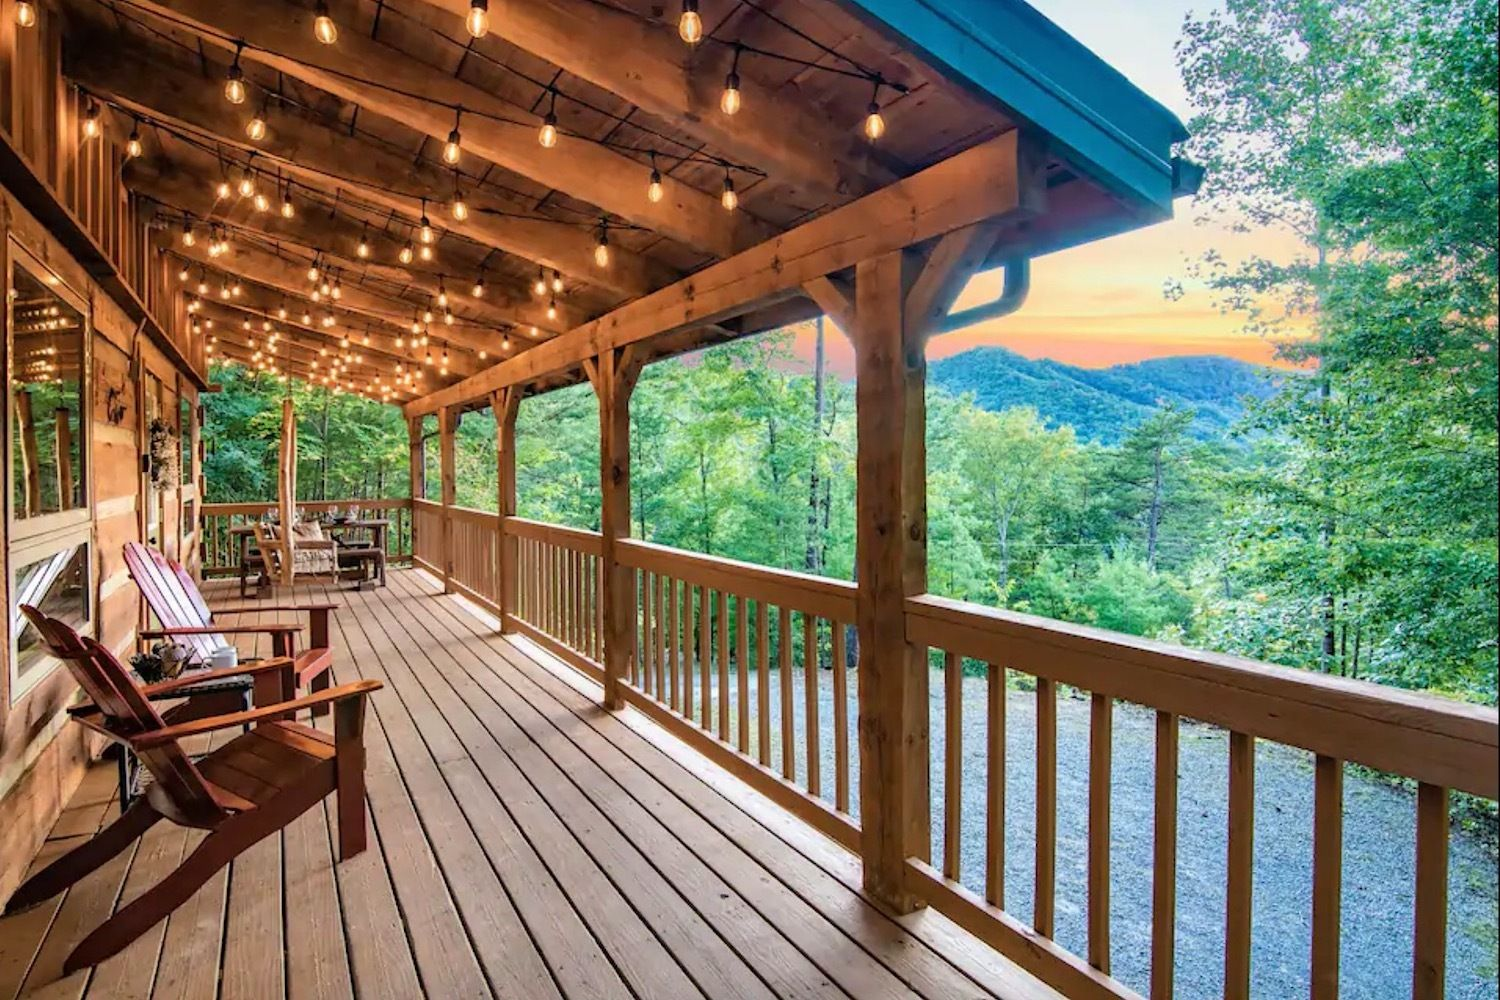 Secluded cabin with sunset views in Sevierville Tennessee